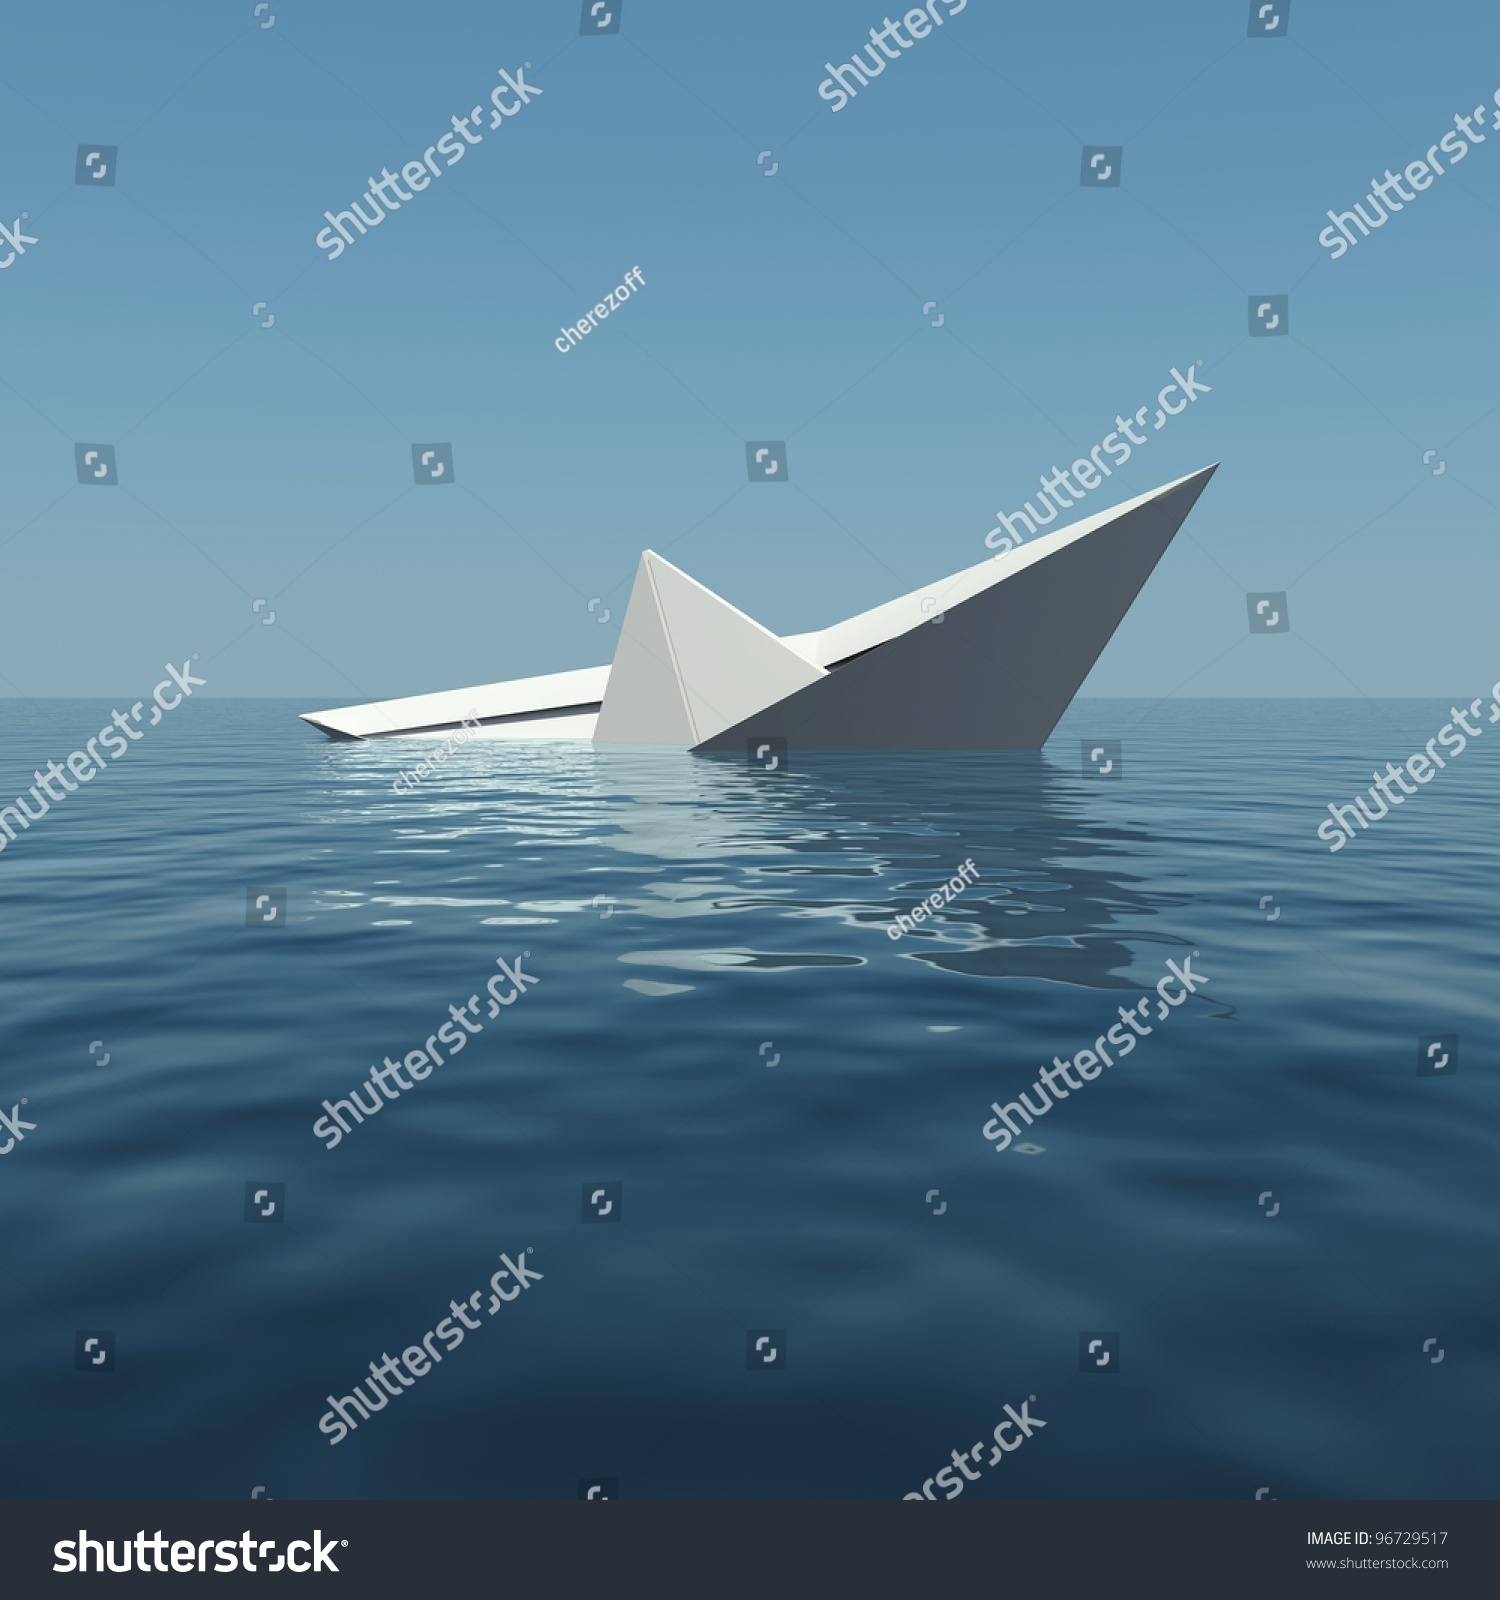 essay memories from a sinking ship Memories from a sinking ship a novel by barry gifford winner of the christopher isherwood foundation award for fiction, 2007 reminiscent of mark twain's adventures.